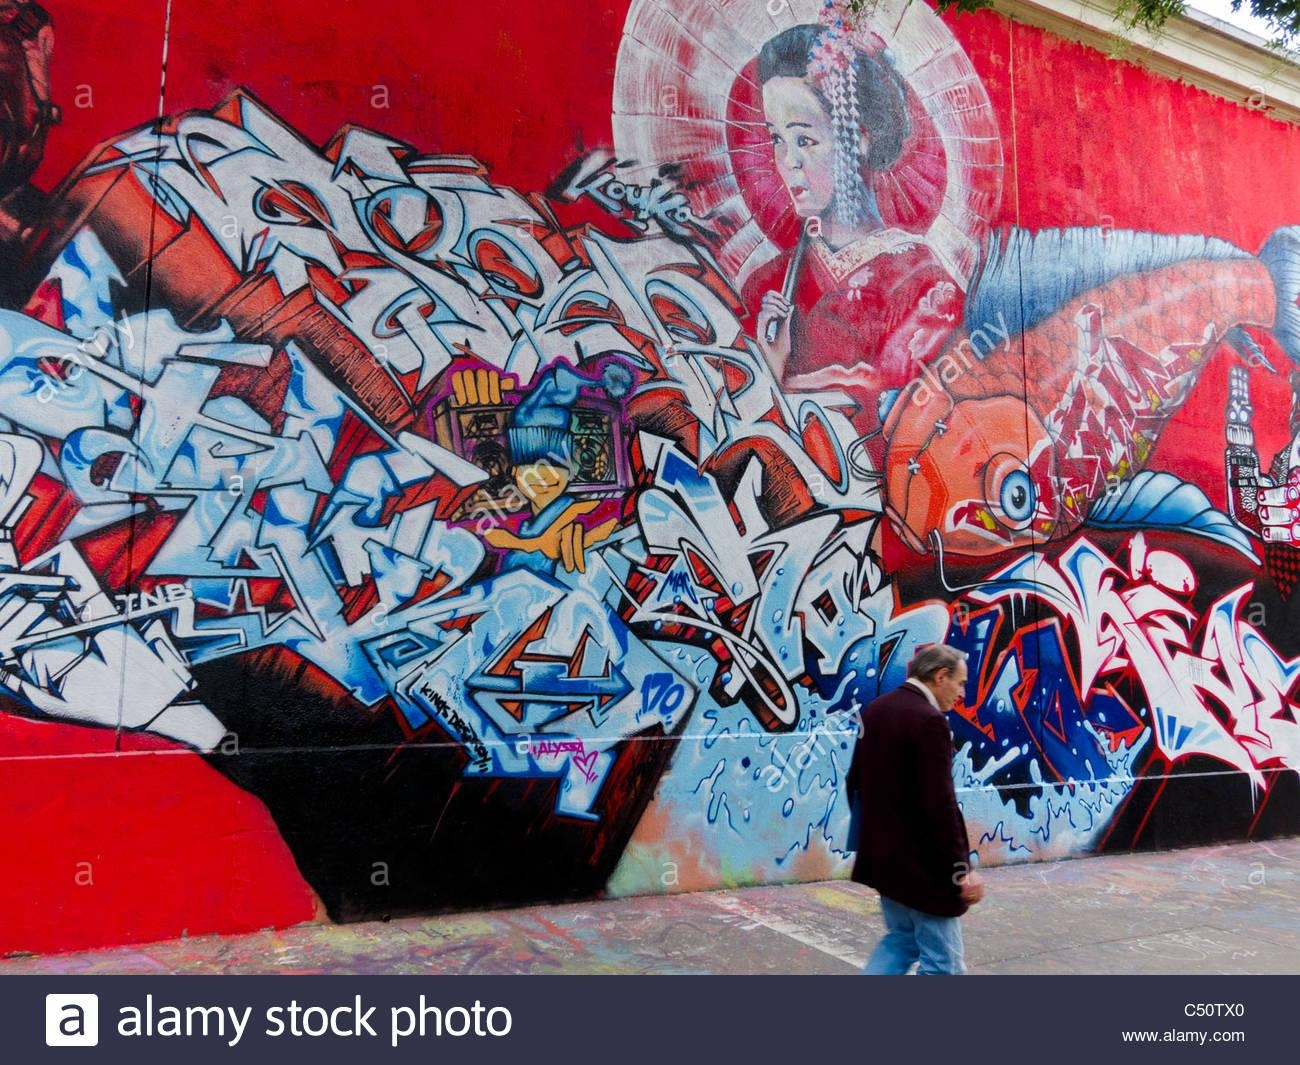 Paris, France, Graffiti Art, Public, Painting Wall, Japanese Theme Intended For Street Scene Wall Art (Image 8 of 20)